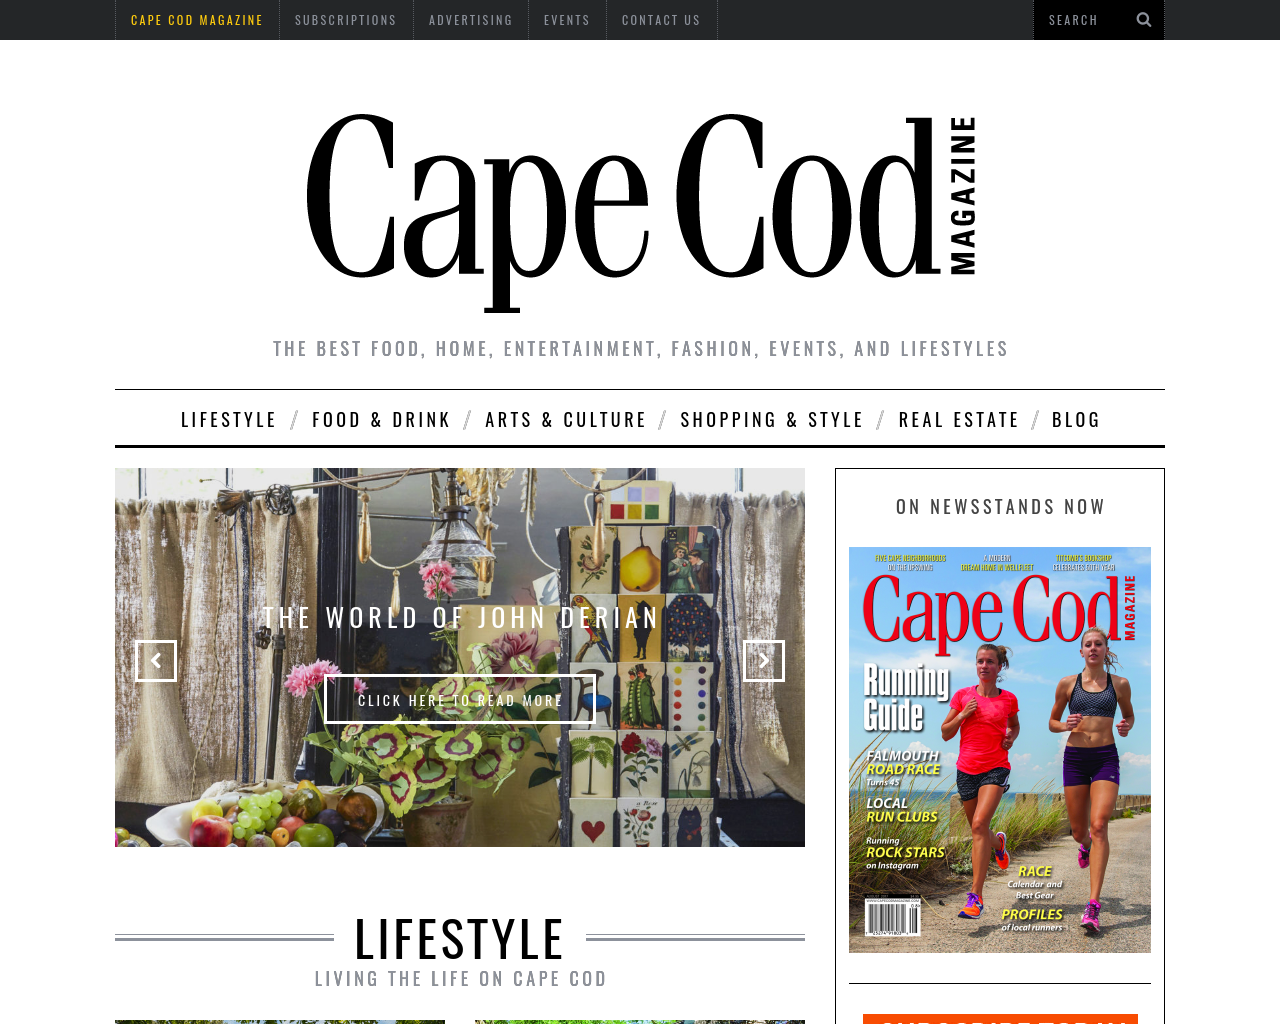 Cape-Cod-Magazine-Advertising-Reviews-Pricing